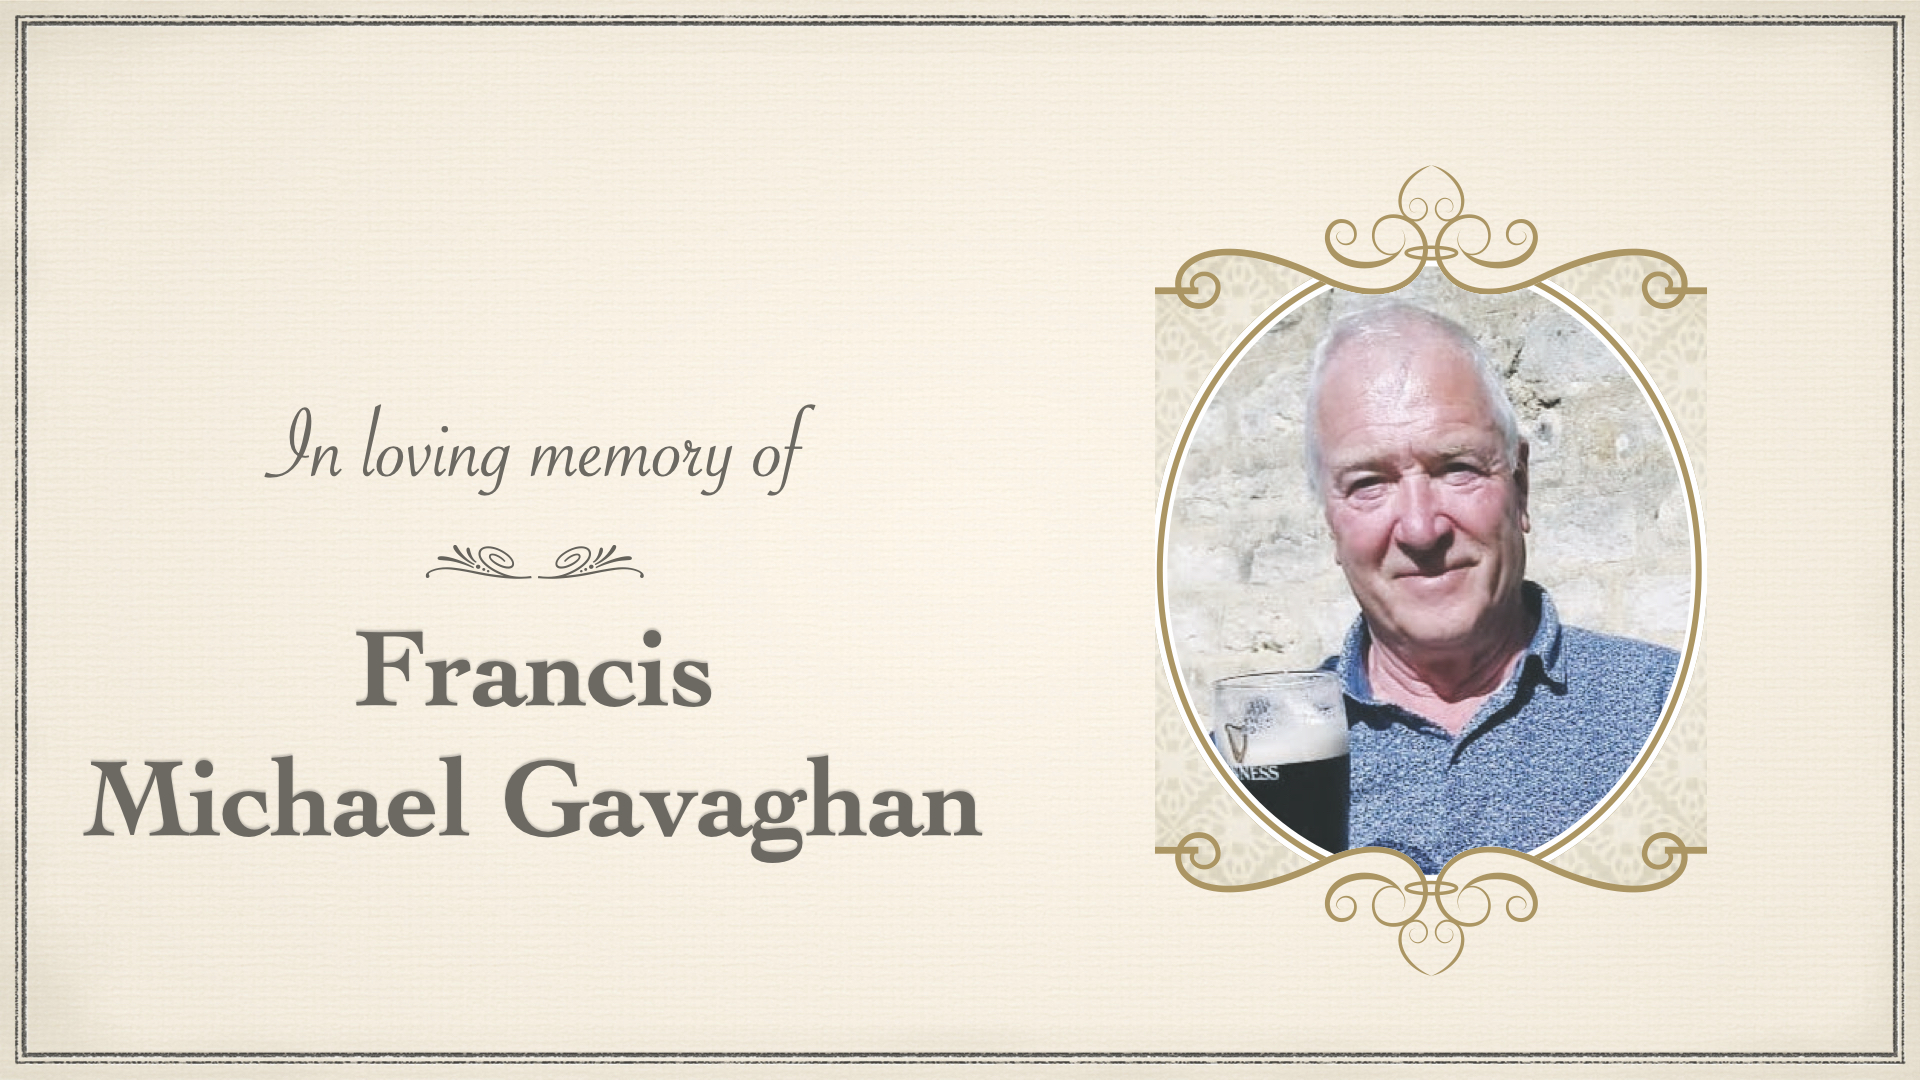 Funeral of Francis Michael Gavaghan – Tuesday 1st June at 10am